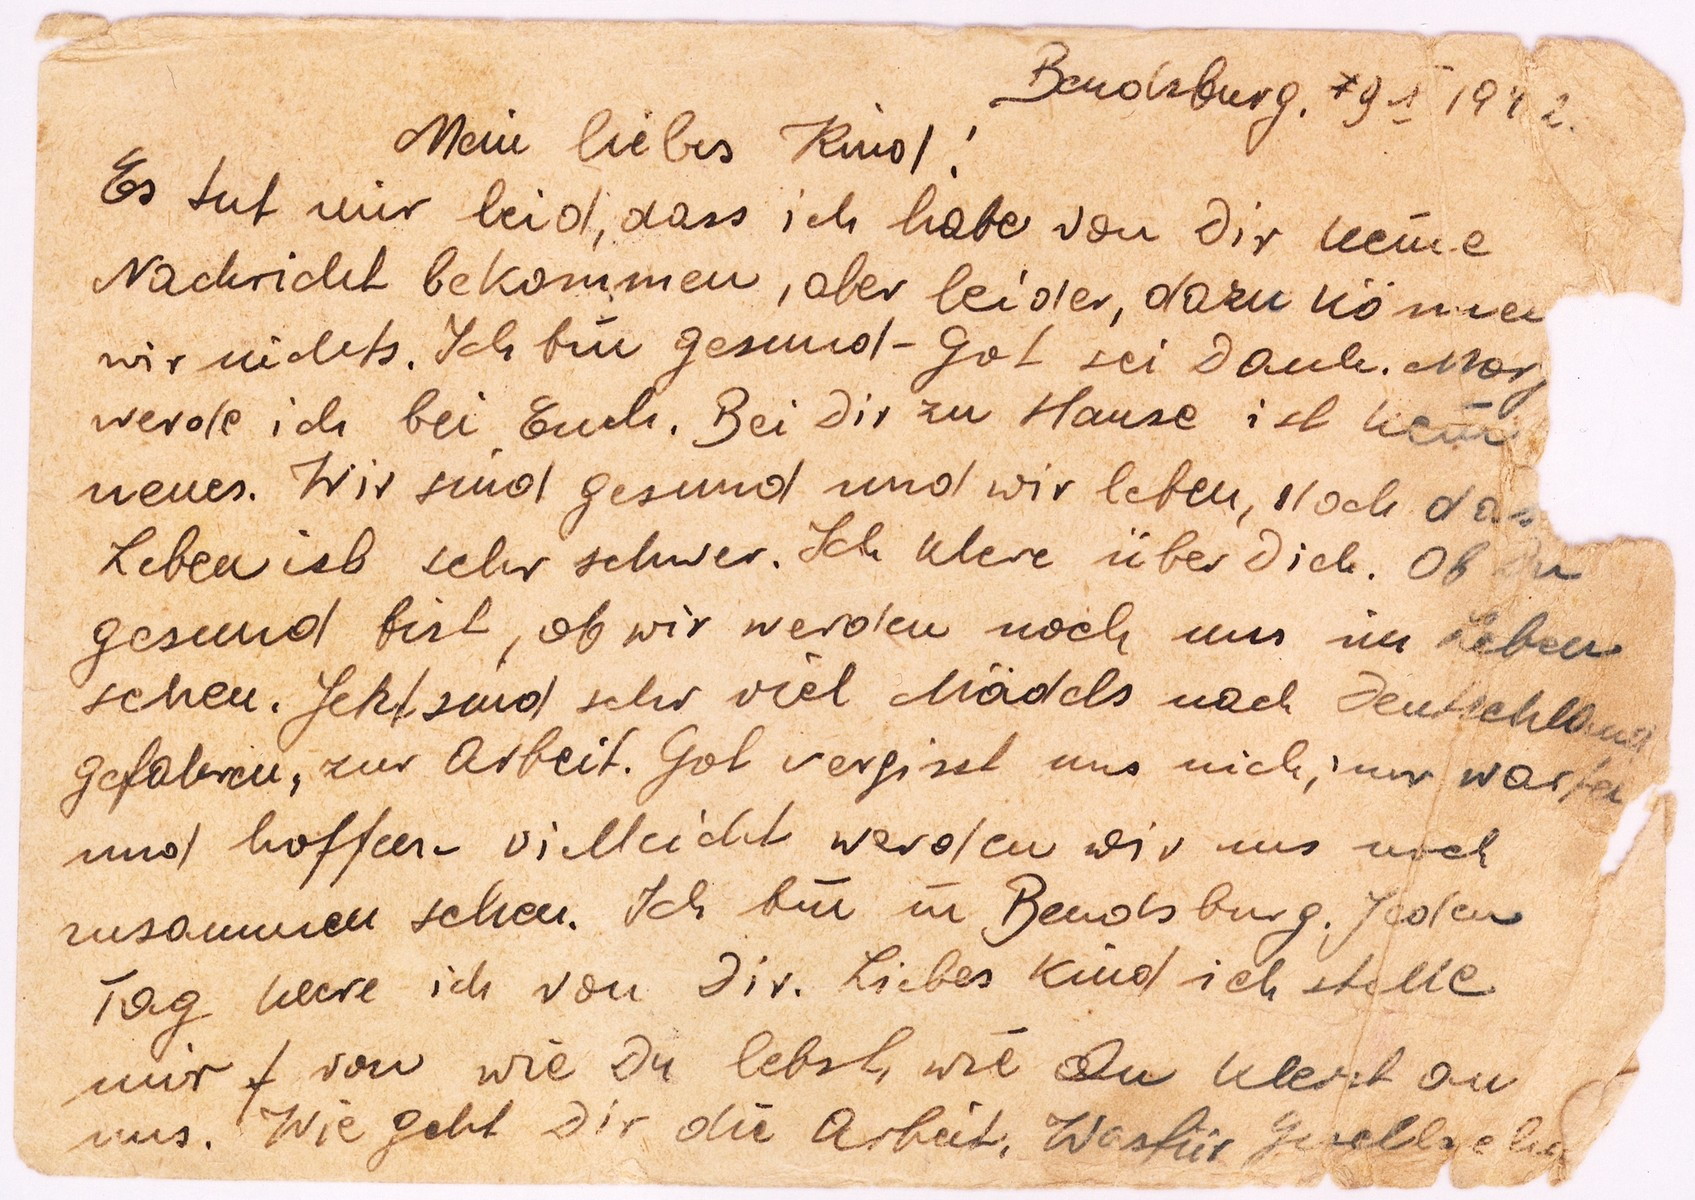 A postcard written by Regina Szajnerman in the Dabrowa ghetto to her niece Hanka Chana Wajntraub, imprisoned in the Gruenberg (Zielona Gora) labor/concentration camp.   The postcard was mailed from Bedzin on October 10, 1942.  Regina Szajnerman perished in unknown circumstances. Hanka survived the Gruenberg camp and a death march to Bergen Belsen. She kept the postcard from her aunt in her shoes until the liberation in April 1945.